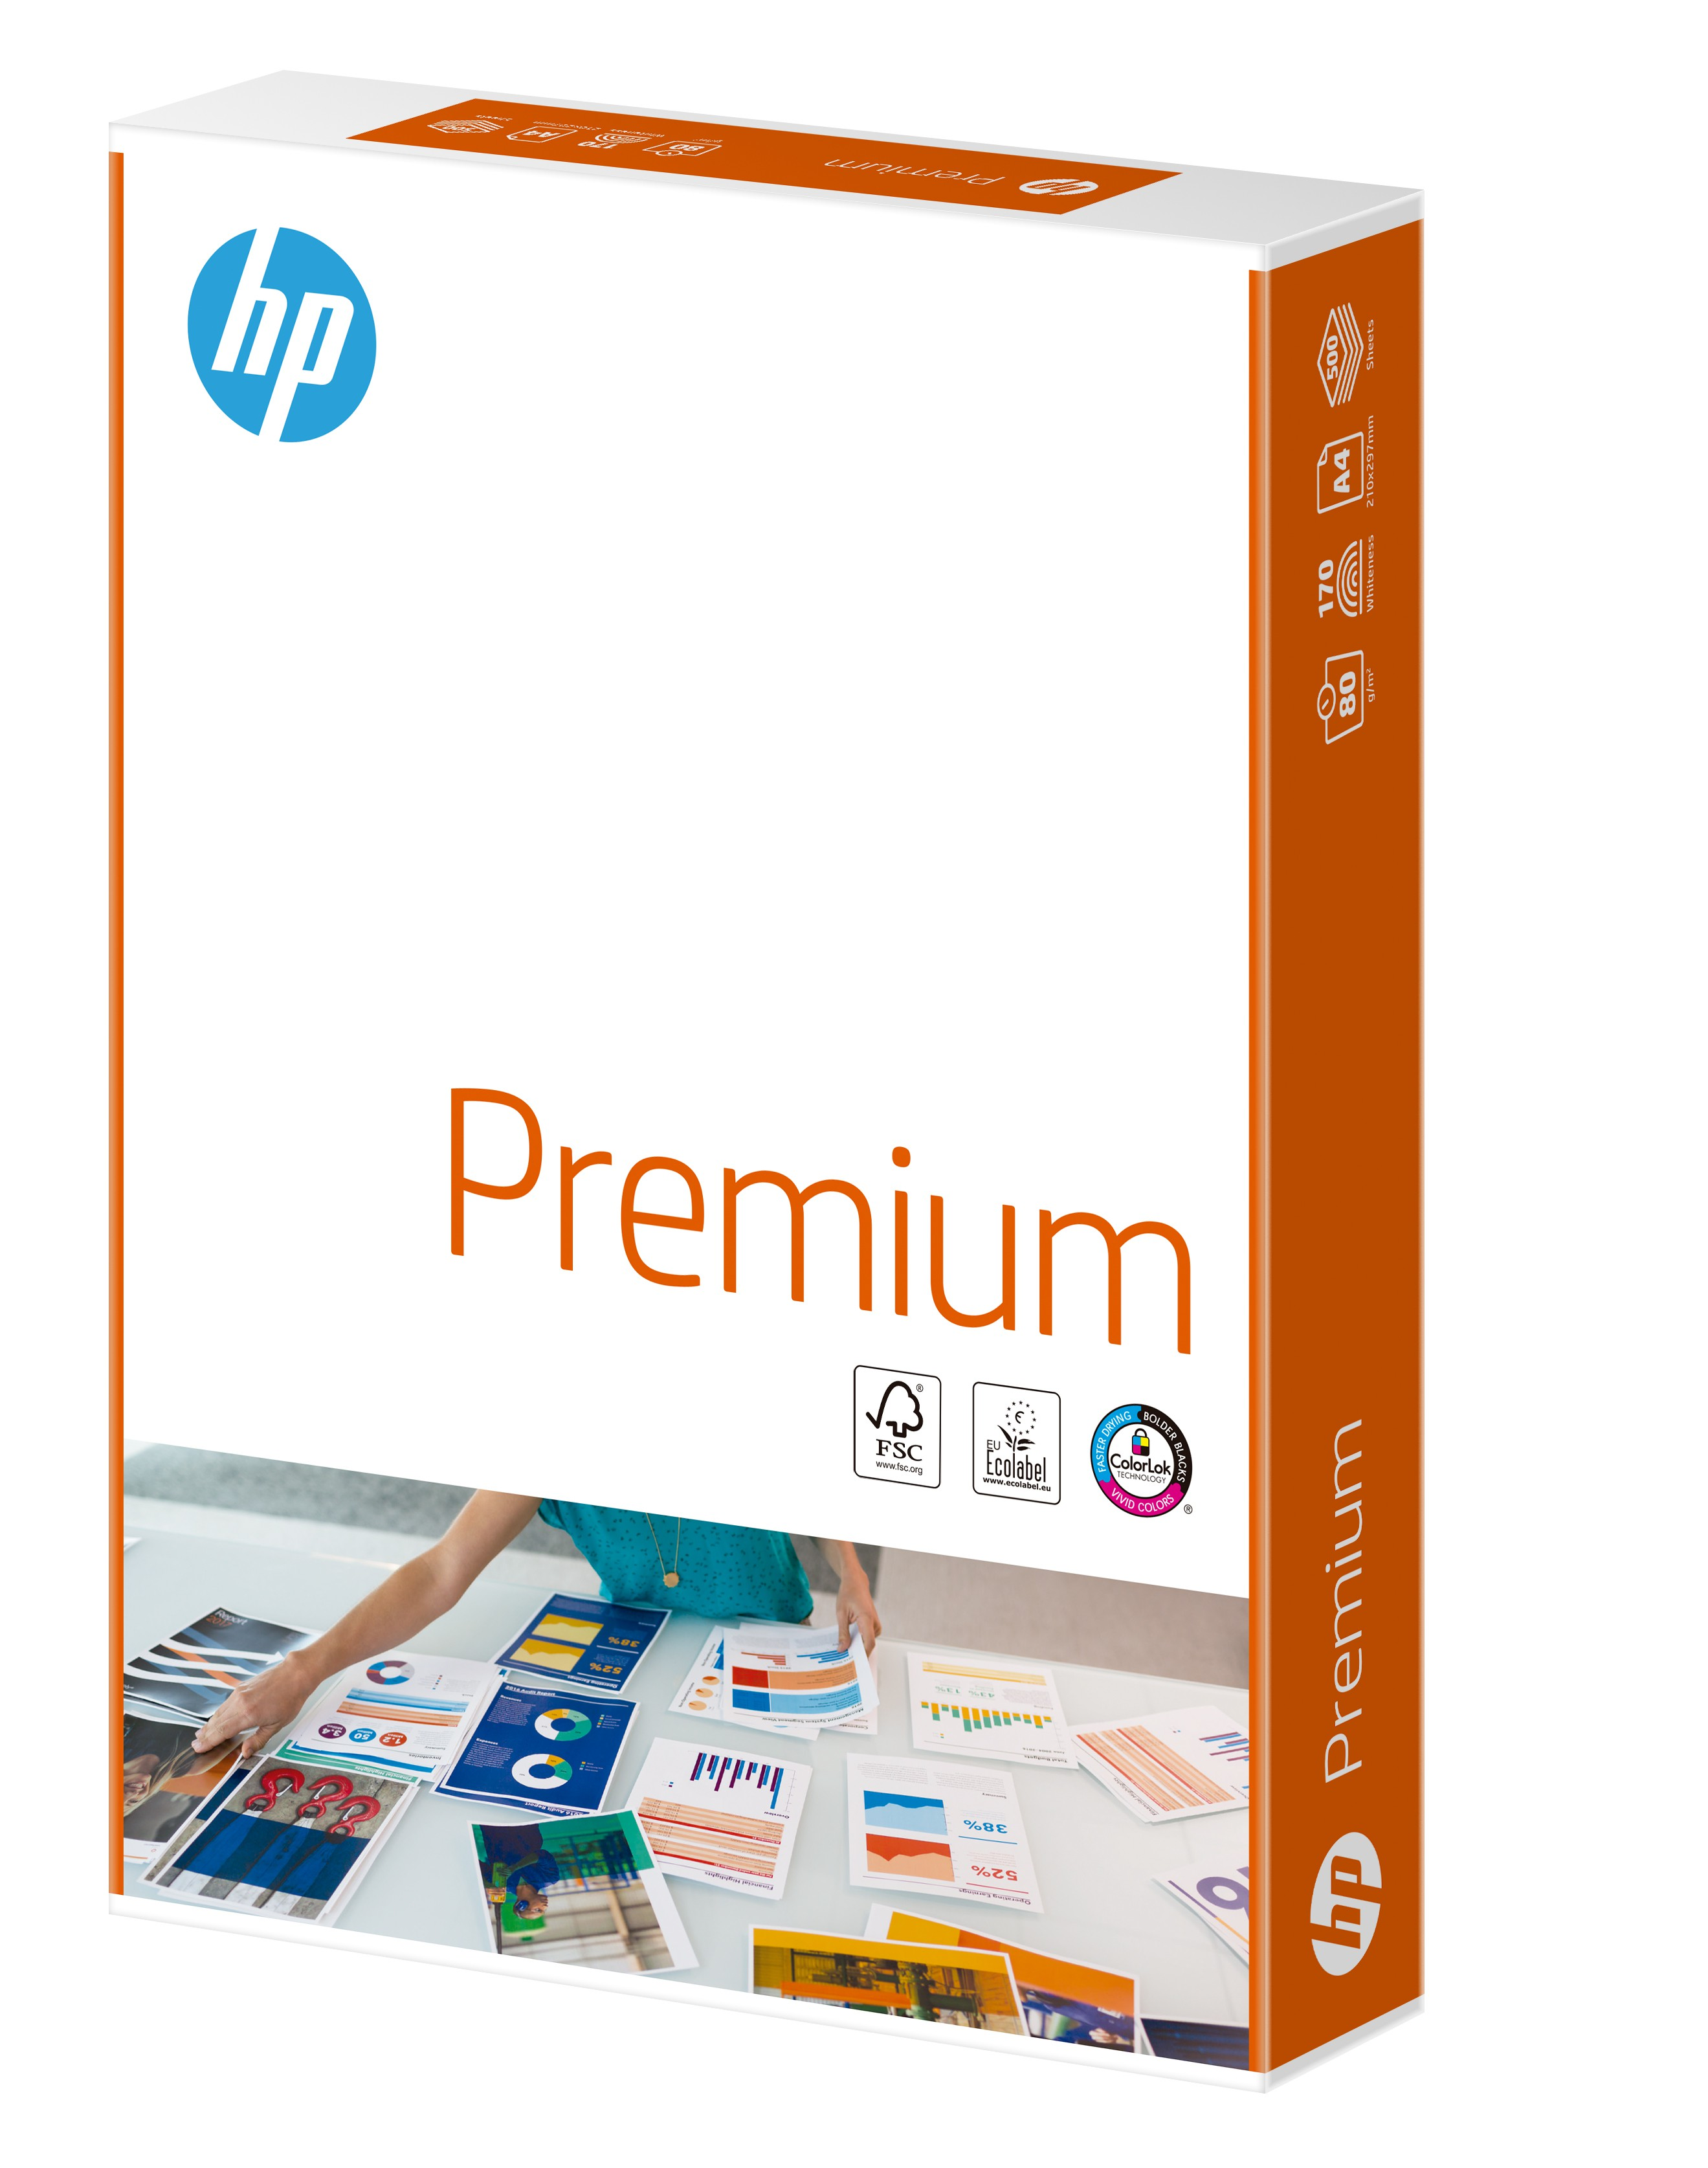 HP Premium Paper Multifunction 90gsm A4 White FSC Colorlok (Ream of 500 Sheets) CHP852